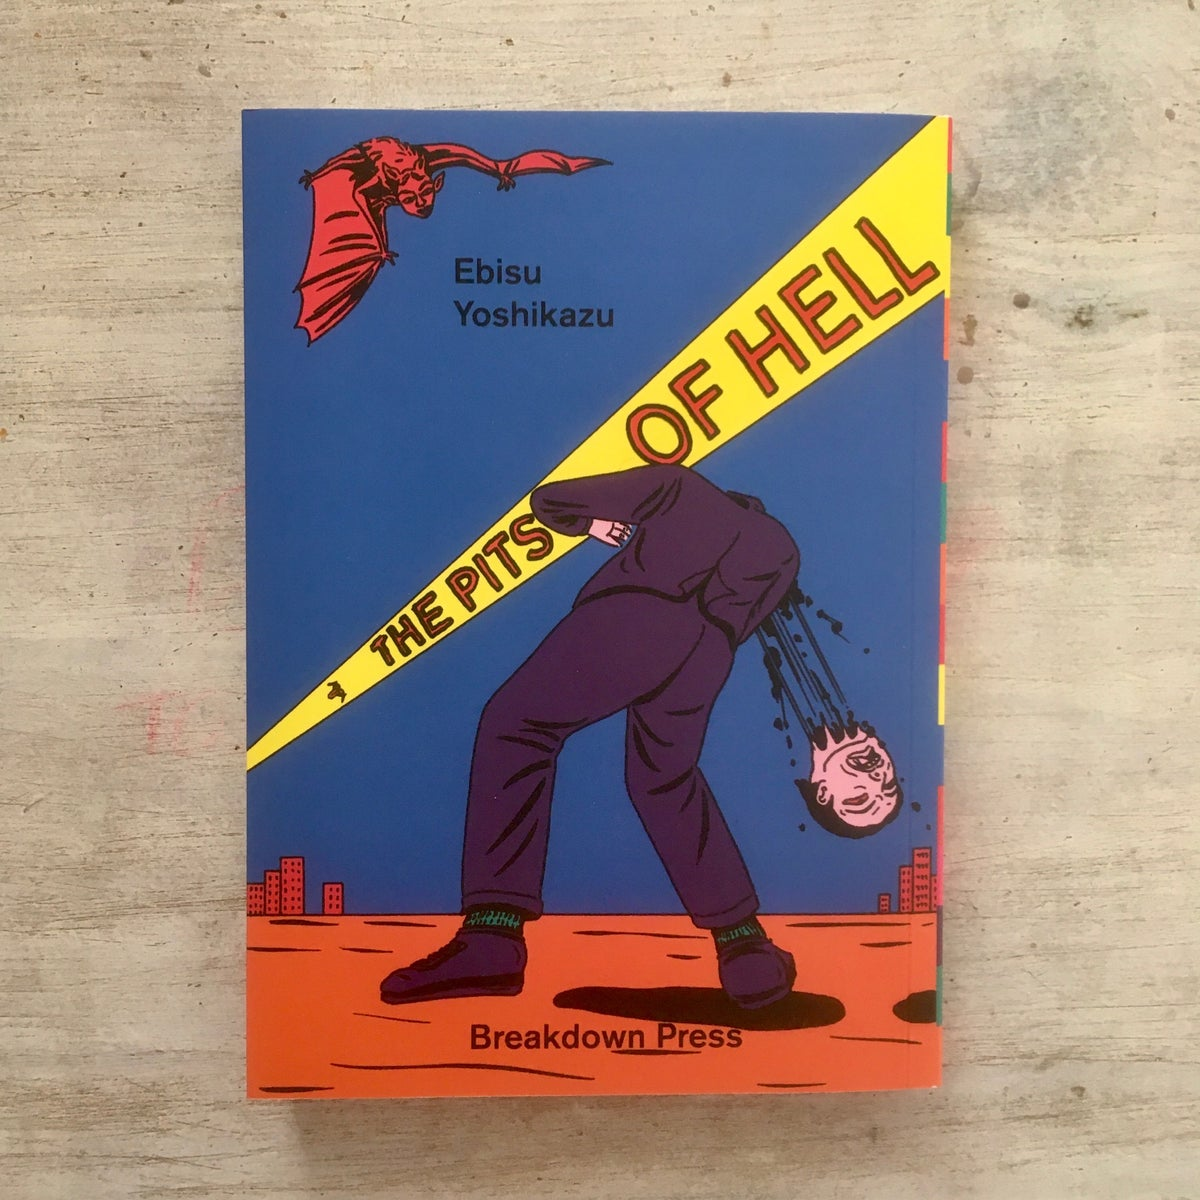 The Pits of Hell (Eng Ed) - Breakdown Press